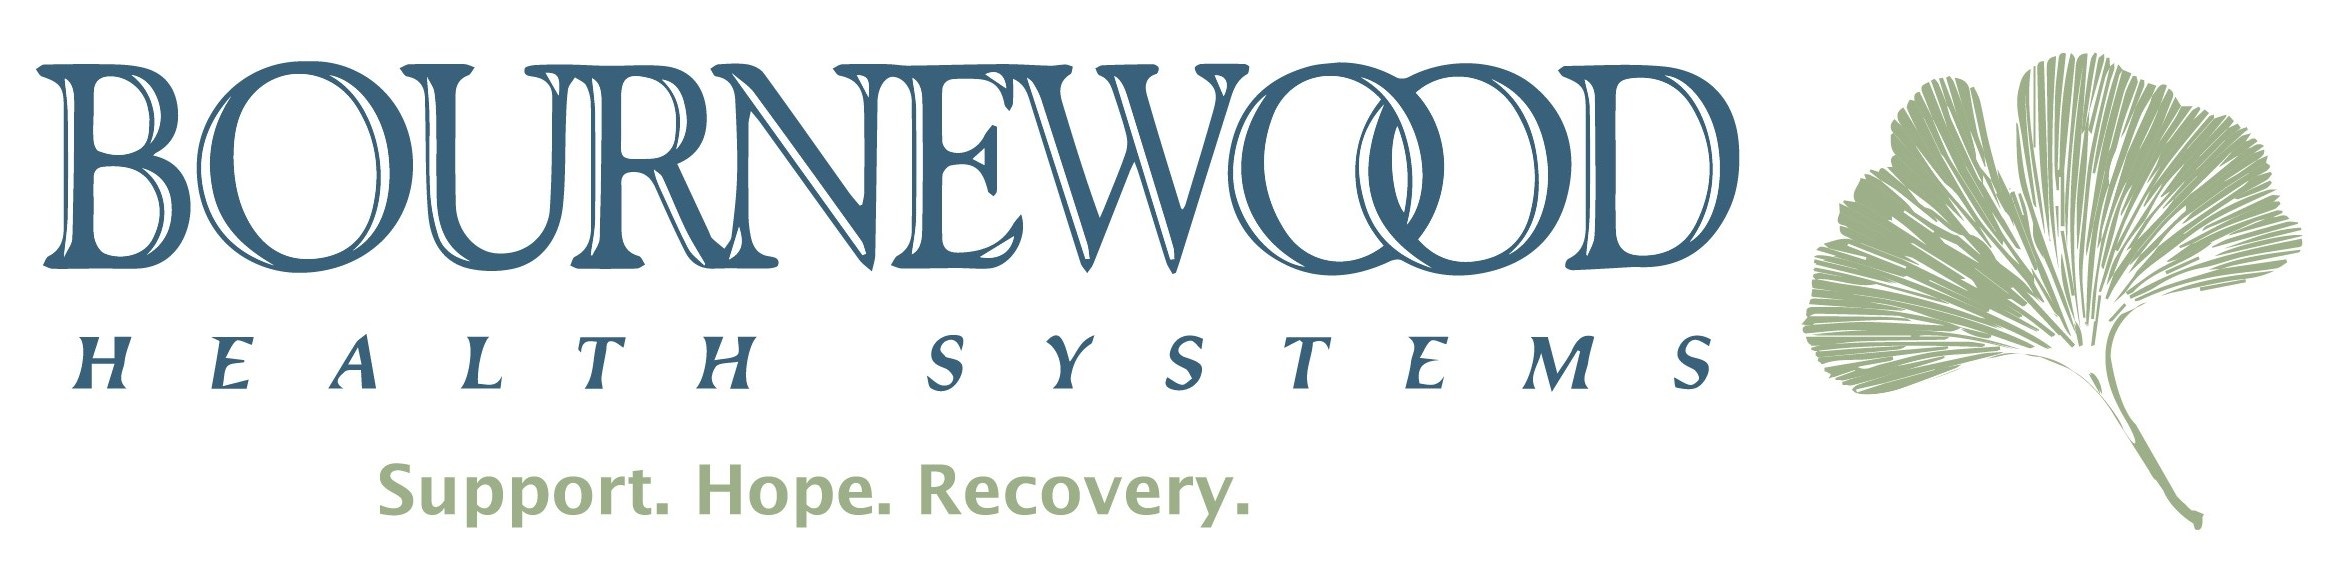 Bournewood Health Systems